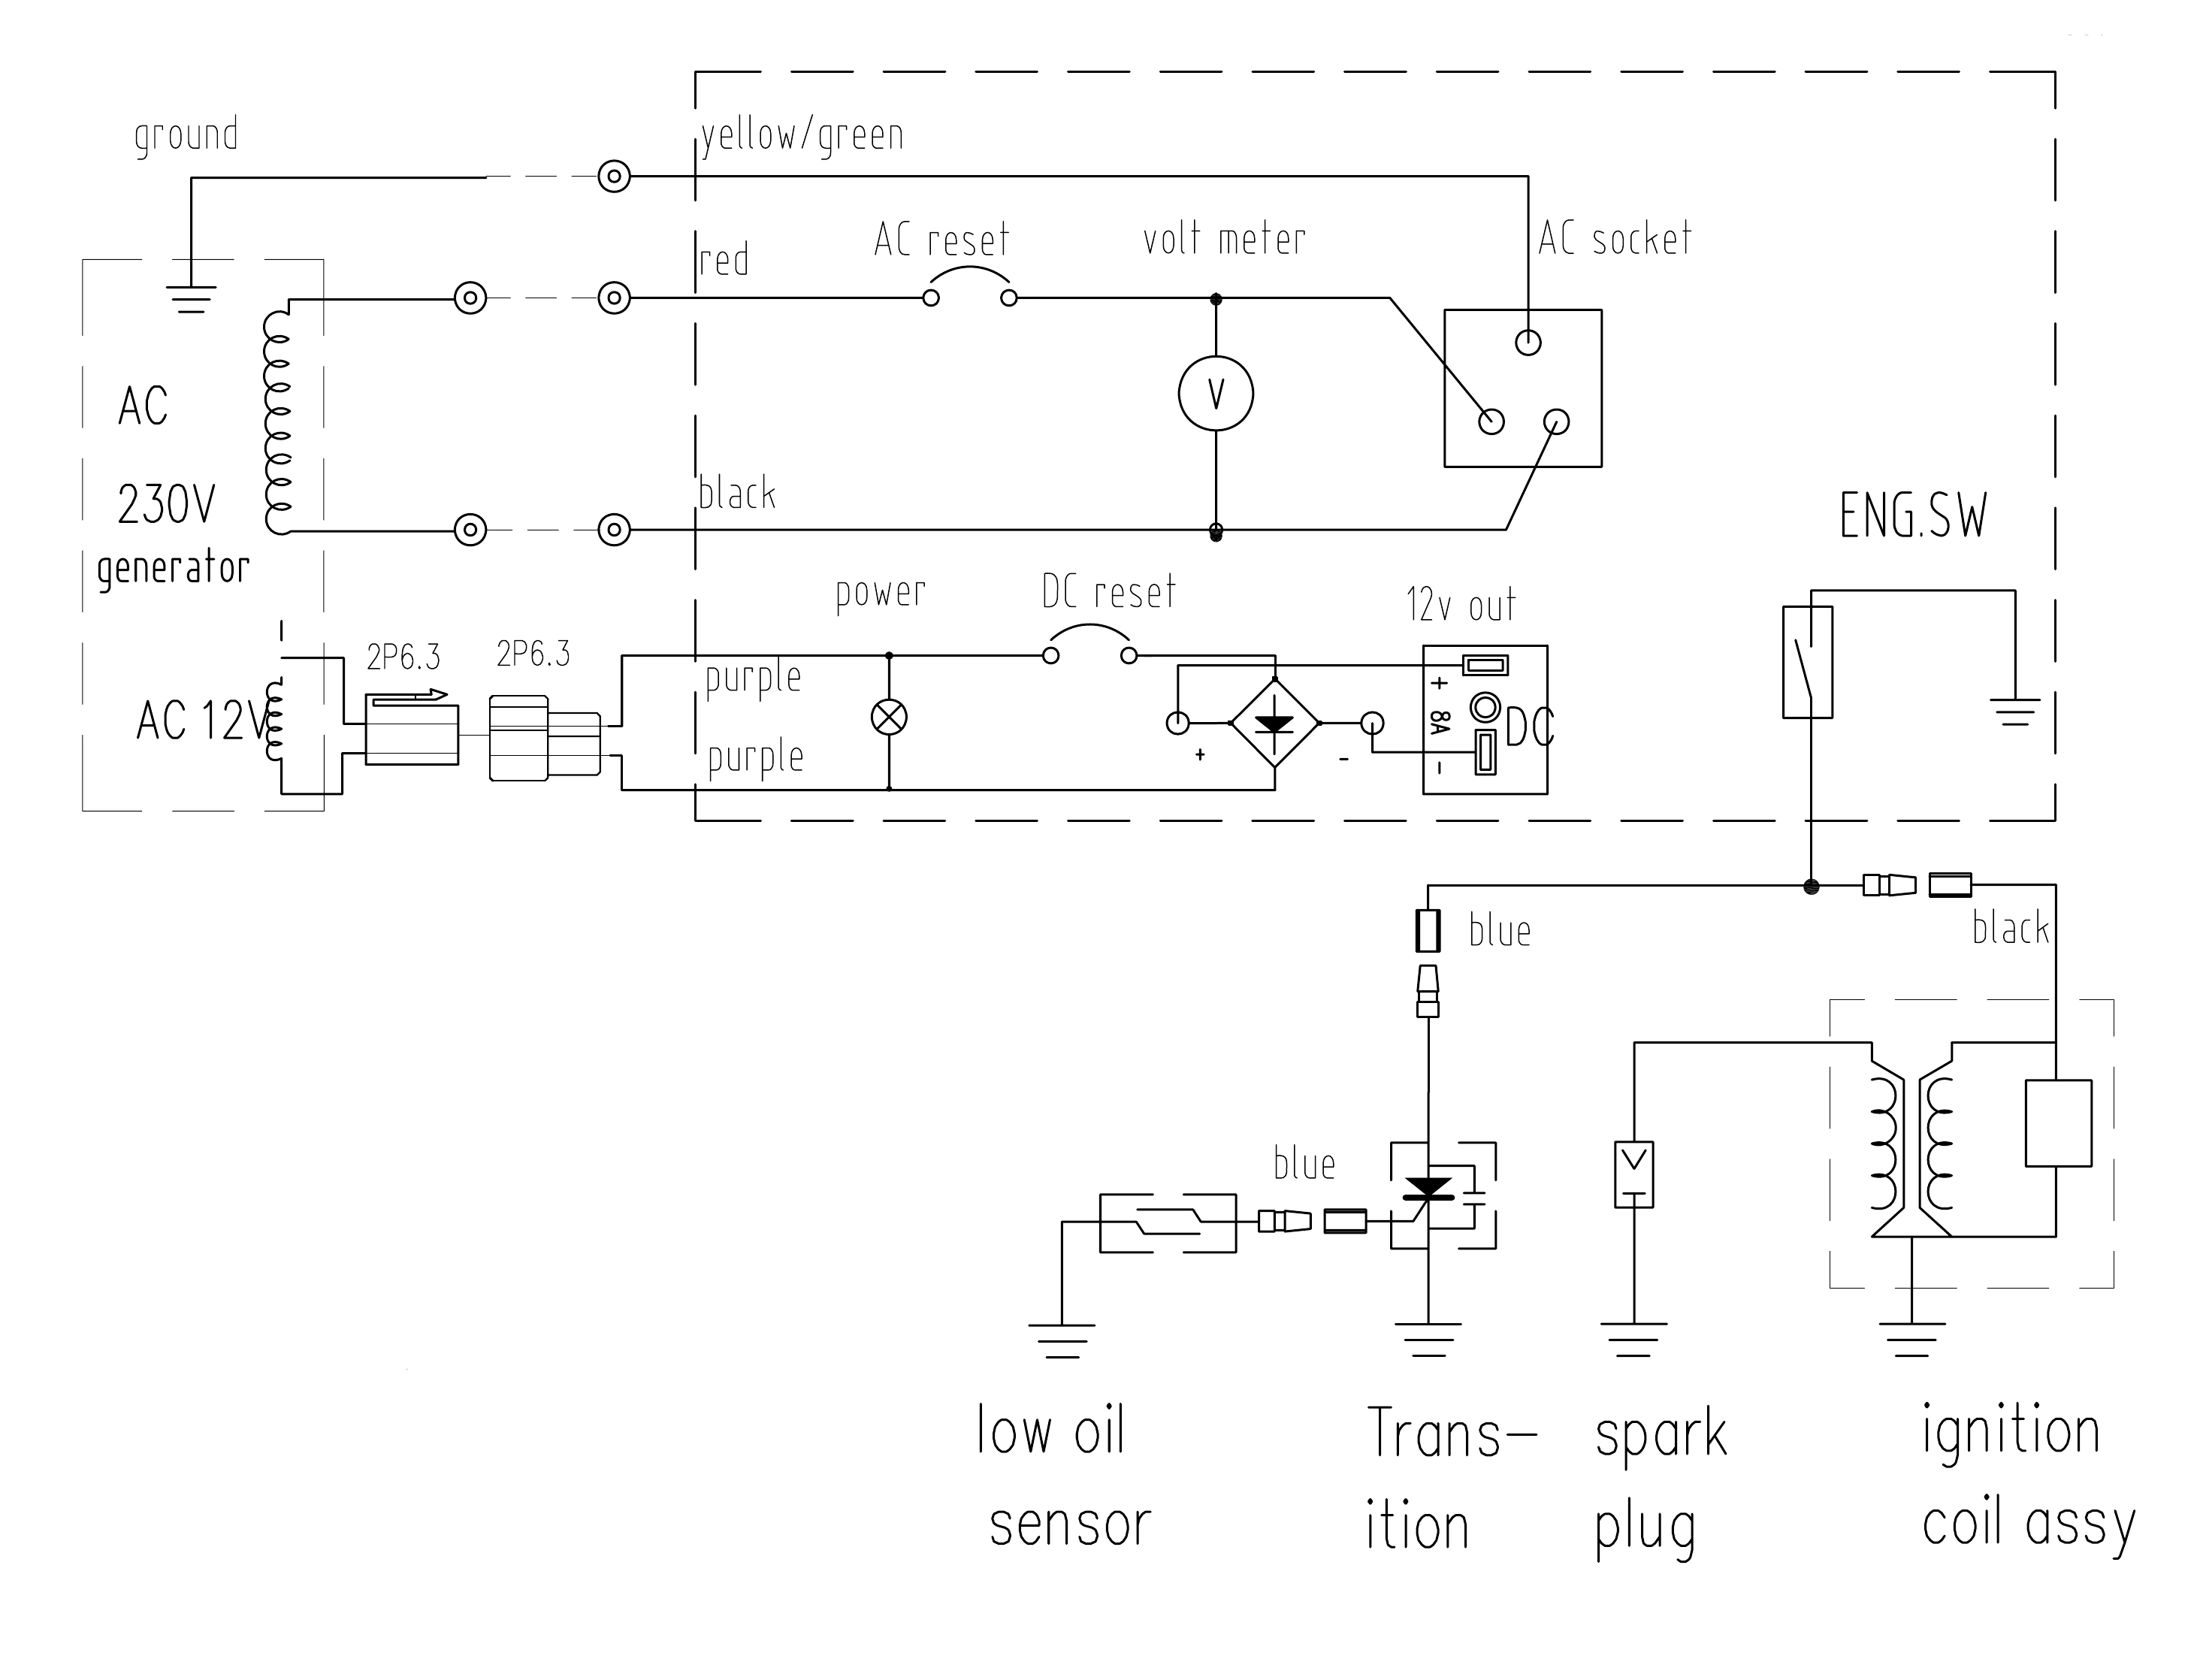 Sip 03955 medusa t1101 generator wiring diagram asfbconference2016 Image collections